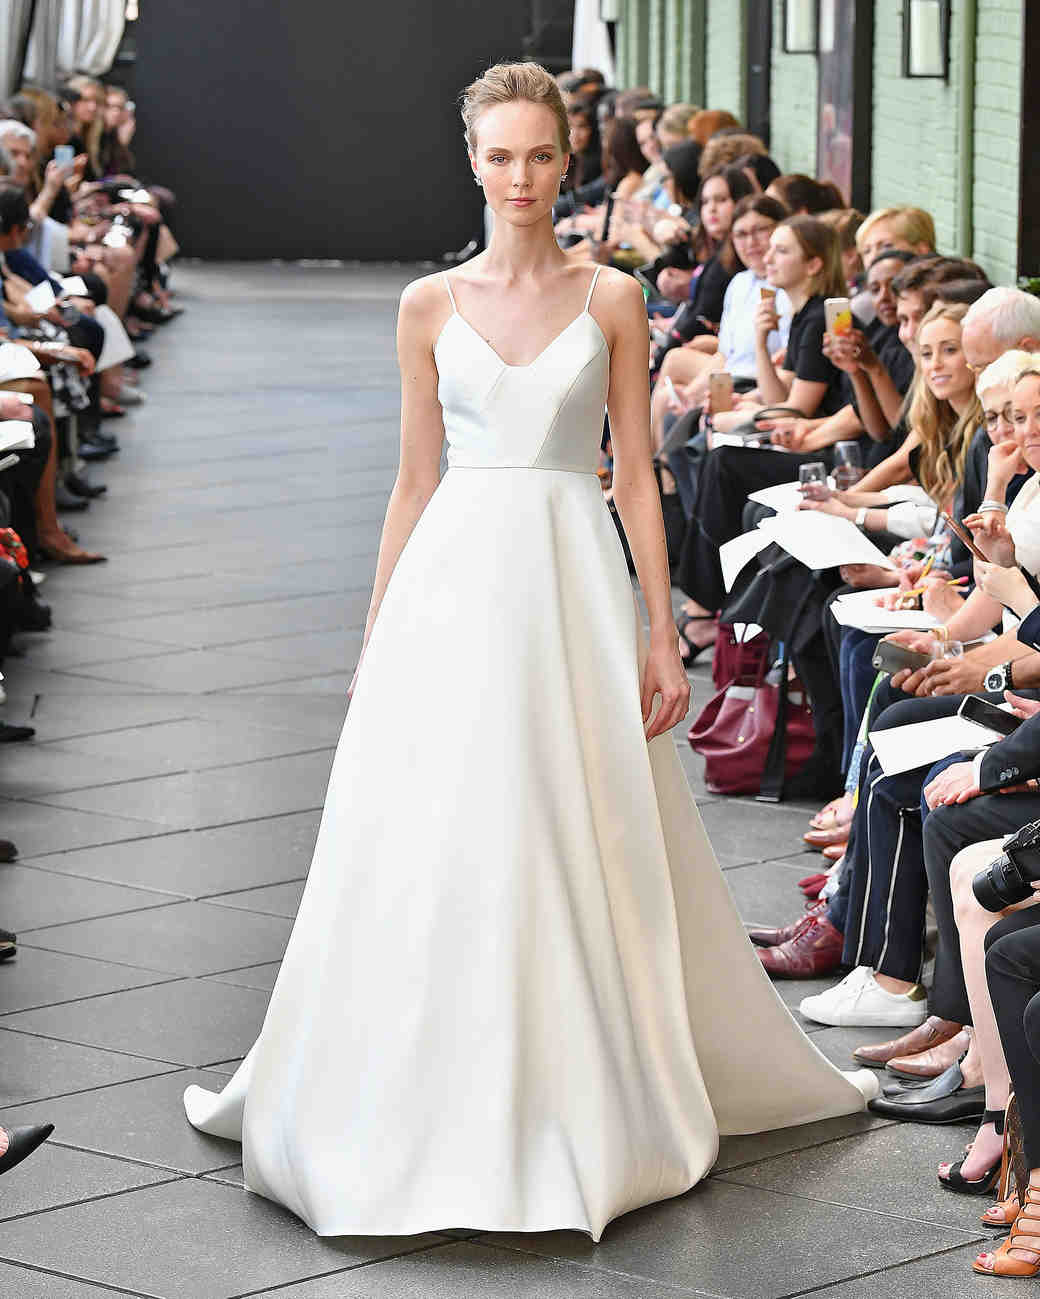 Amsale Wedding Dress: Nouvelle Amsale Spring 2019 Wedding Dress Collection